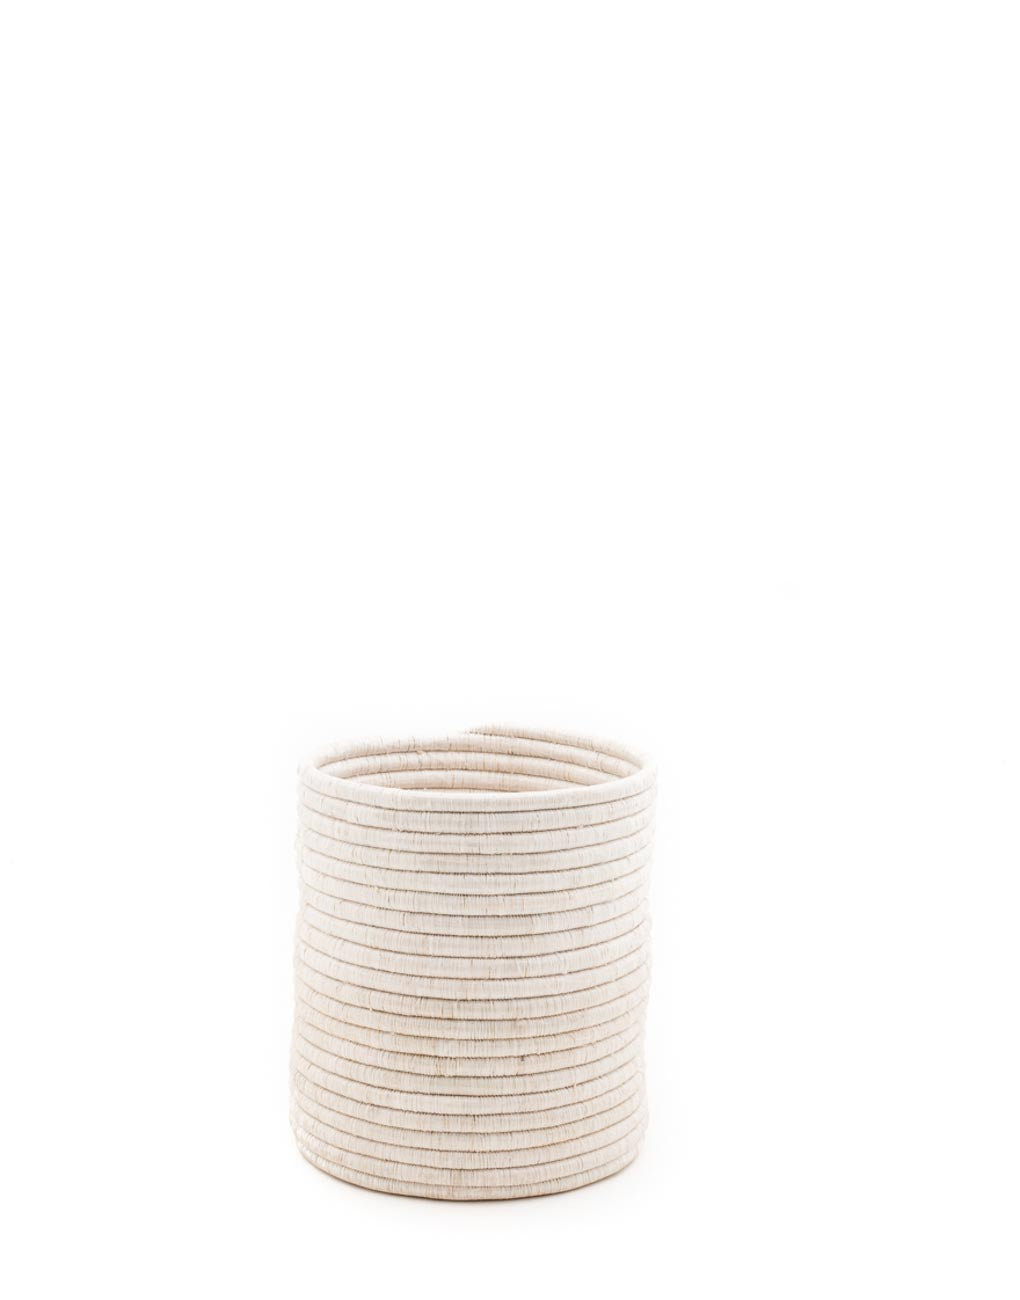 Small White Woven Bath Bin | The Little Market